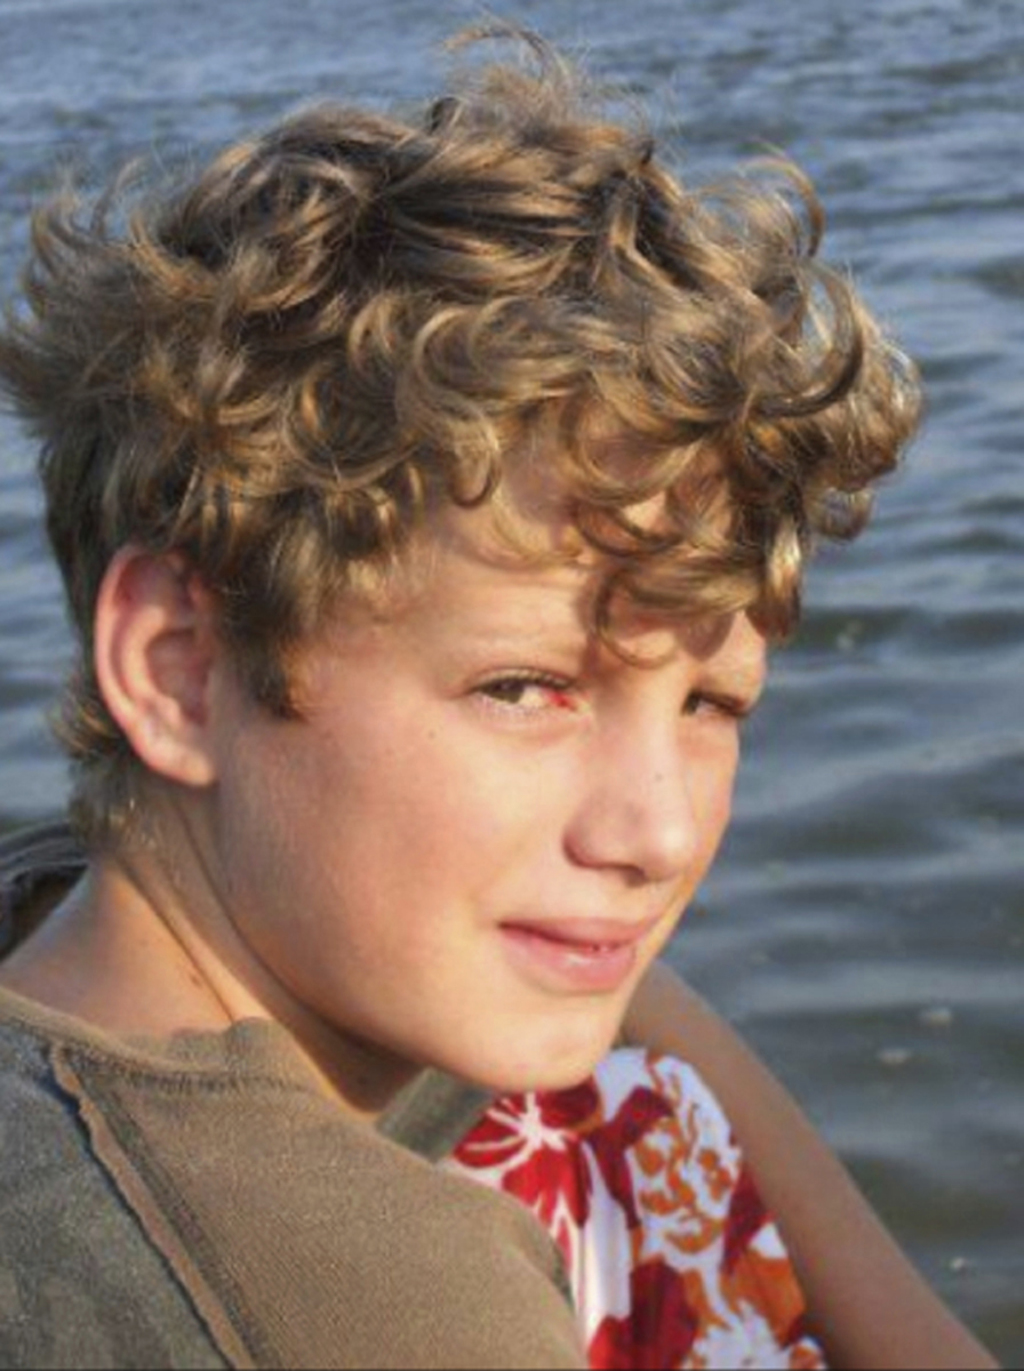 This summer 2011 photo provided by his mother shows Noah Daigle. Noah, 13, was accidentally shot on Dec. 30, 2011, by his best friend w...